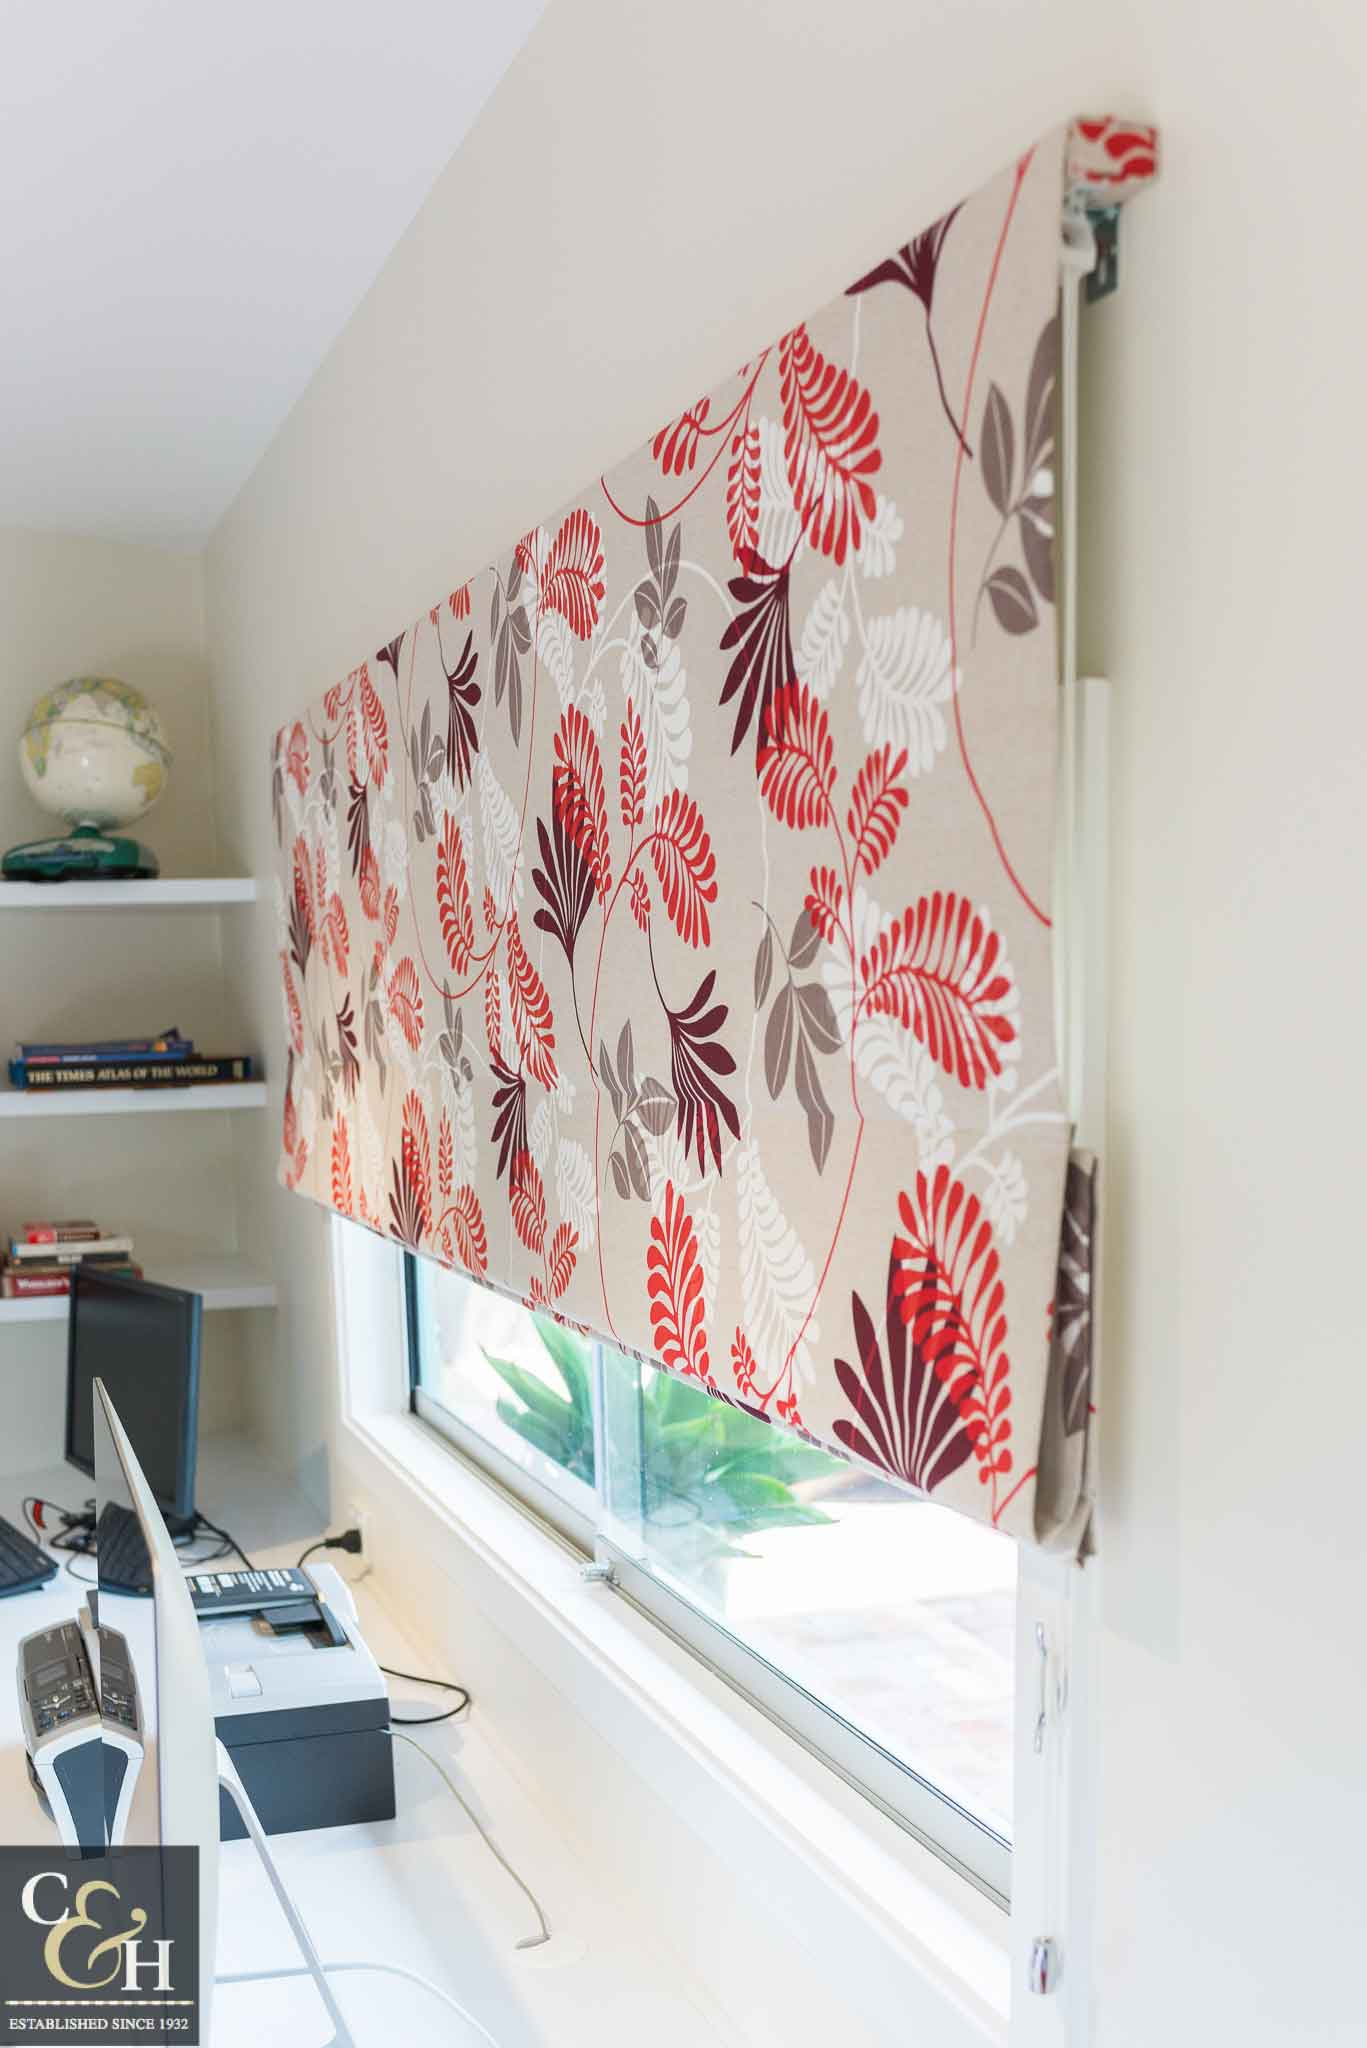 Patterned roman blinds 52 on a window.